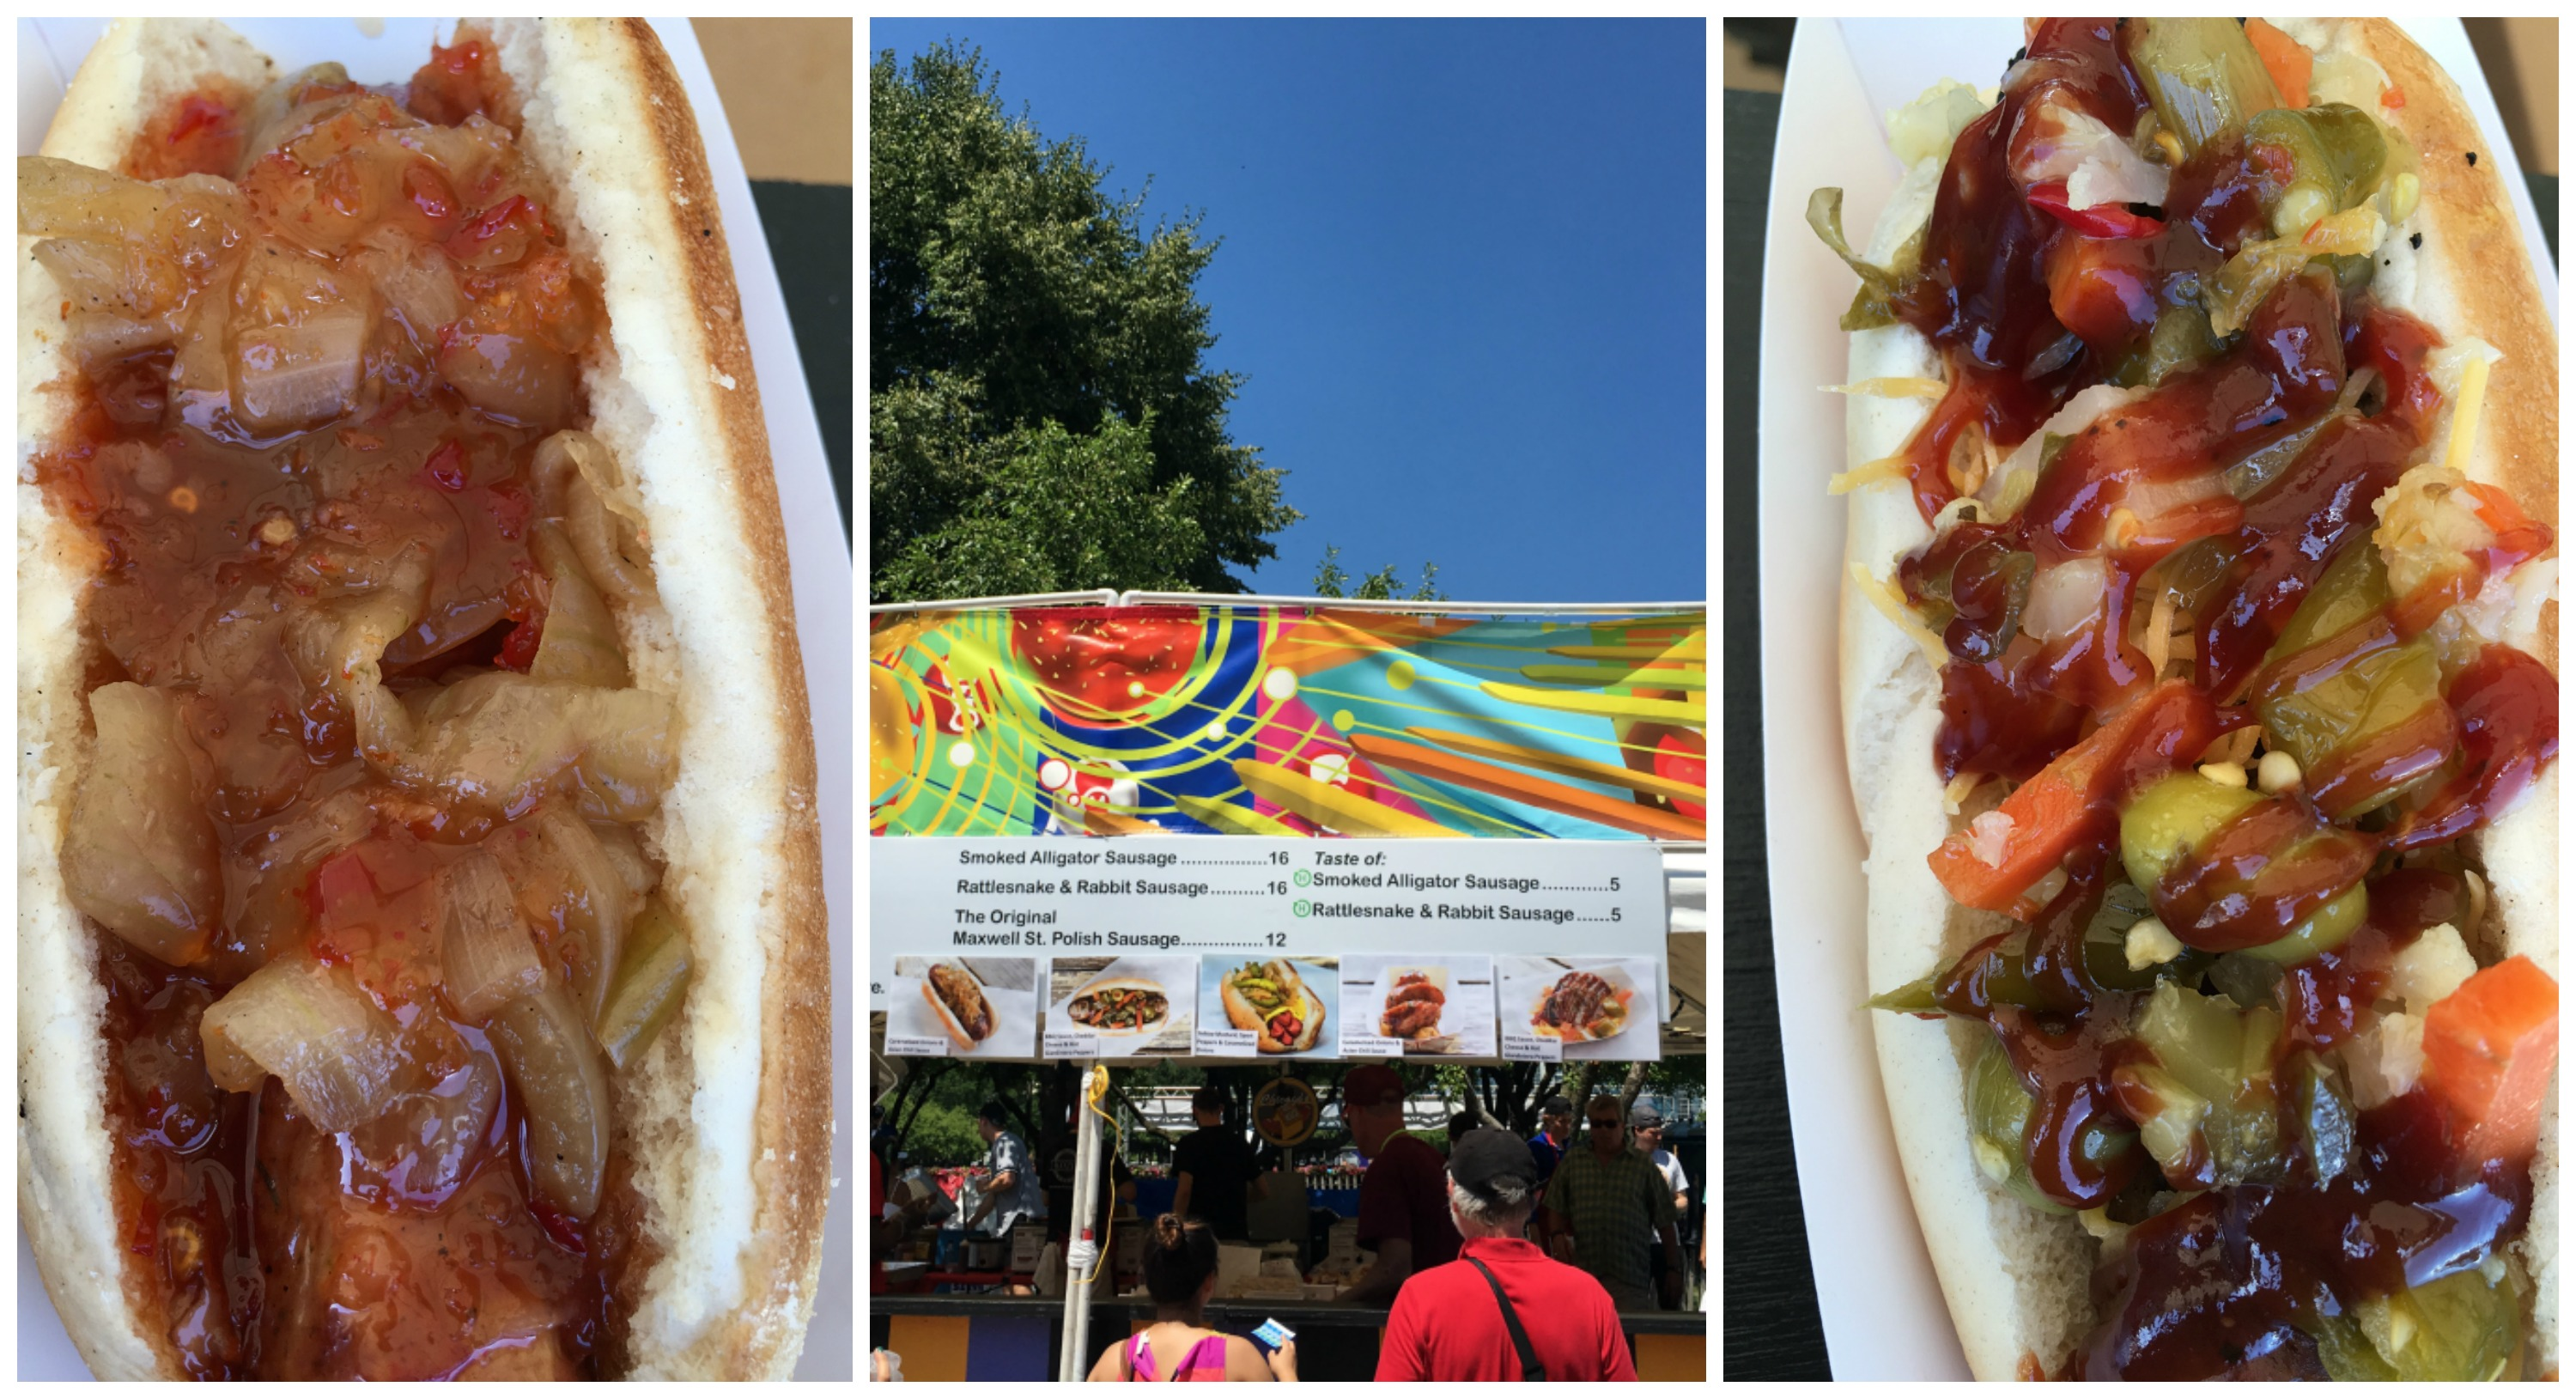 Chicago's Most Popular Summer Food Festival